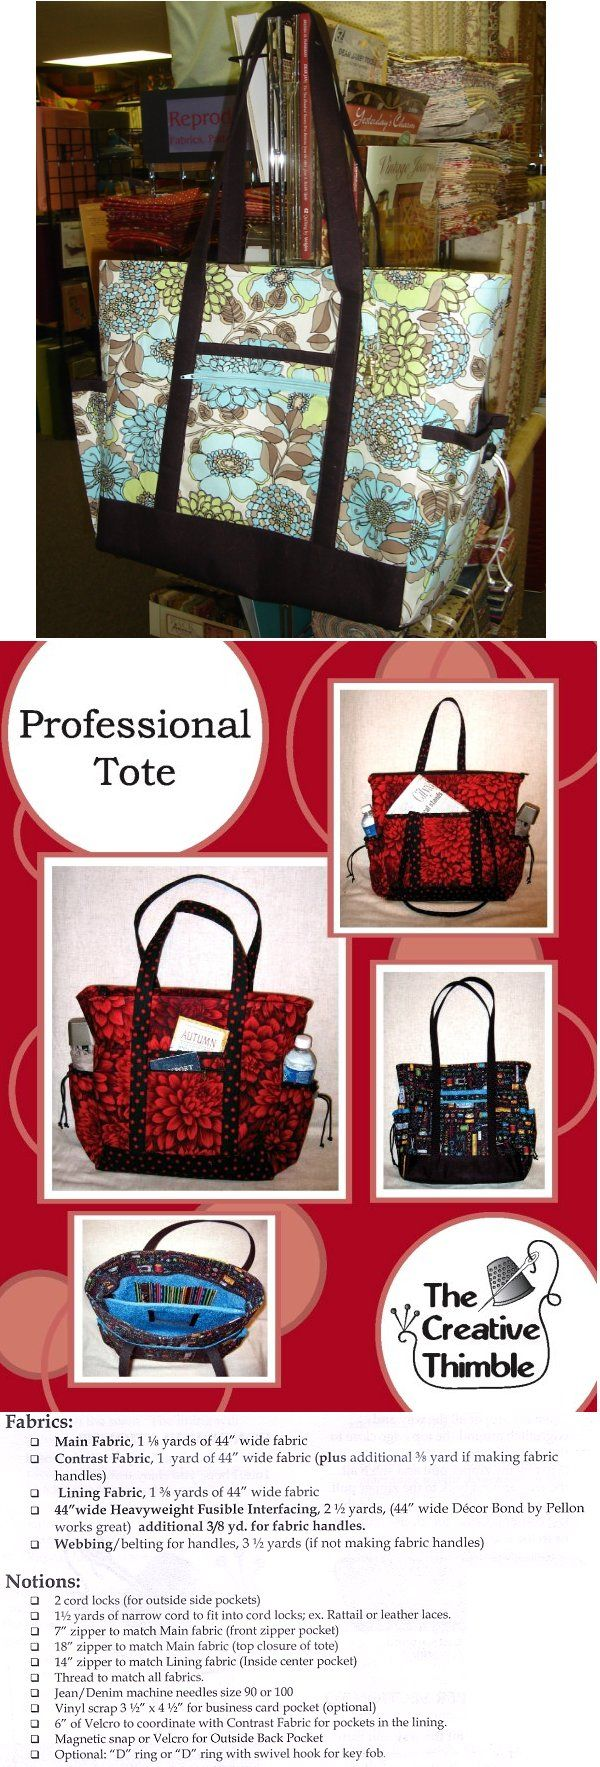 Professional tote bag pattern. Pockets inside and outside, including water bottle pouches on side. www.ericas.com/...